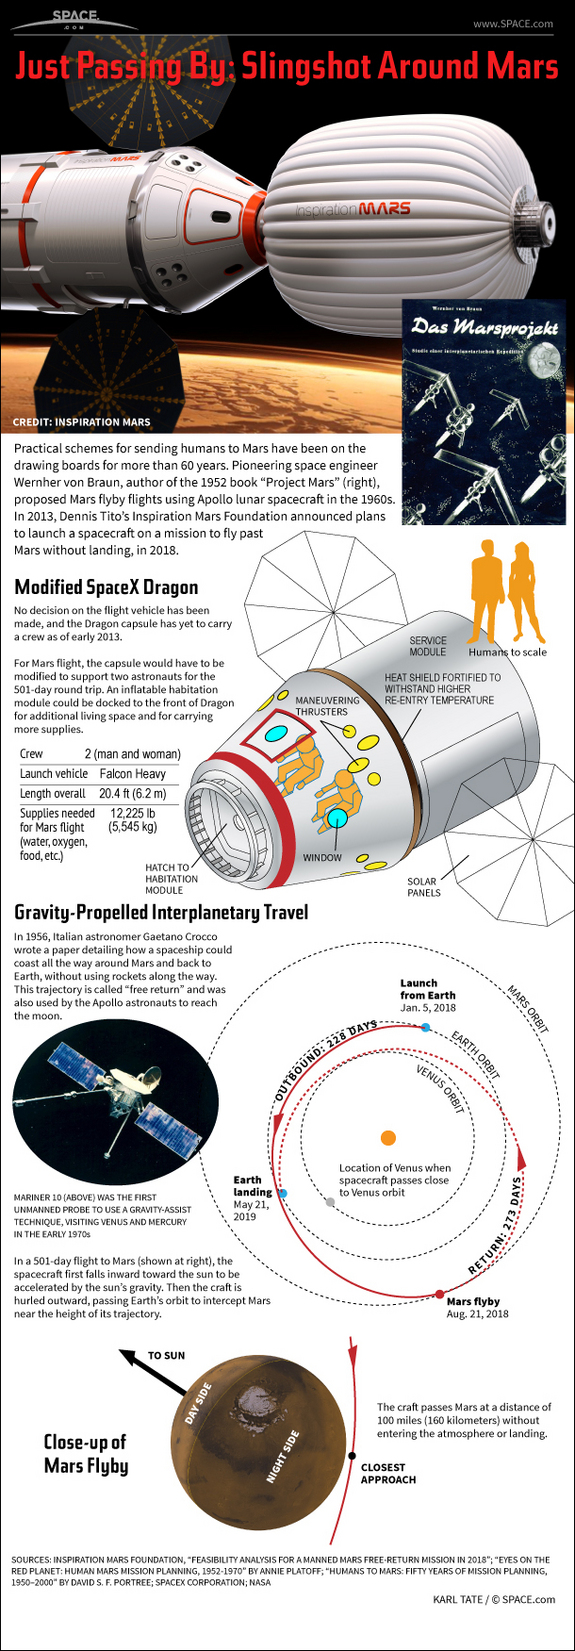 Find out about Dennis Tito's daring proposal to send a married couple on a 501-day space flight around the planet Mars and back, in this SPACE.com Infographic.